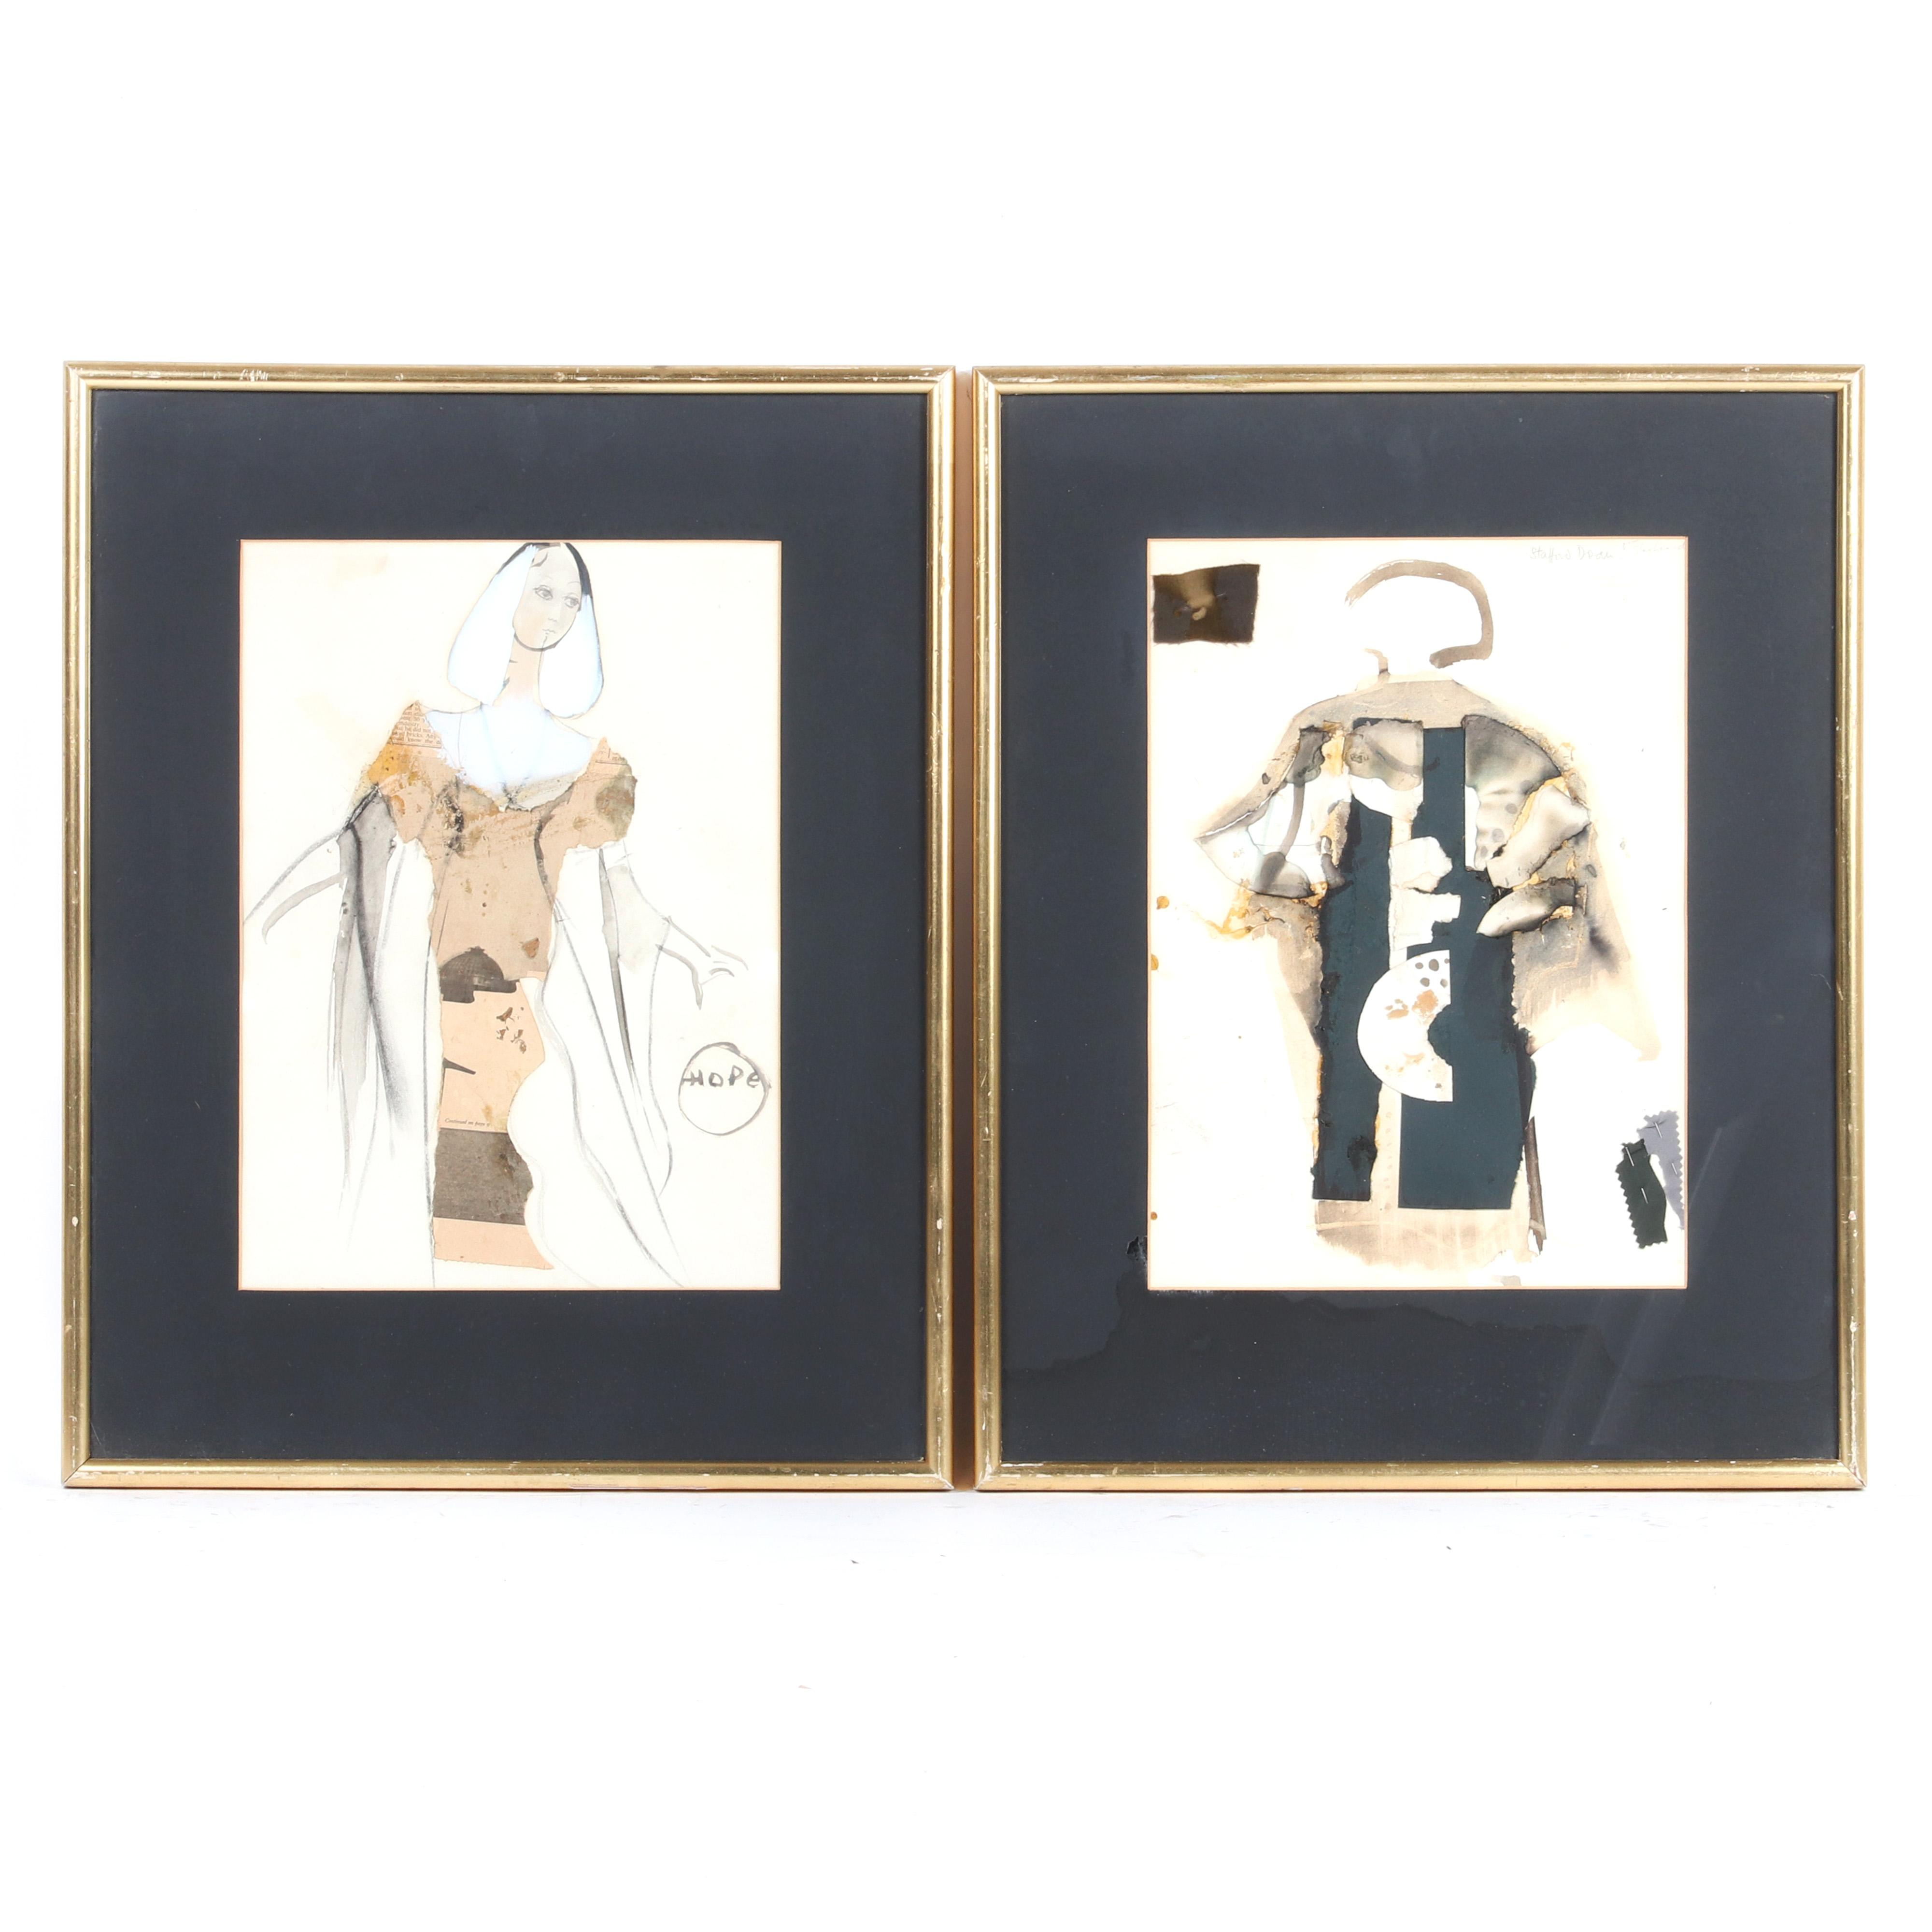 """Yolanda Pauline Tamara Sonnabend, (1935-2015), Monteverdi, The Madrigals for Stafford Dean and another costume design renderings, collage and mixed media on paper, 14 1/4""""H x 10 1/2""""W (image) 21 1/2""""H x 17"""" W (frame)"""